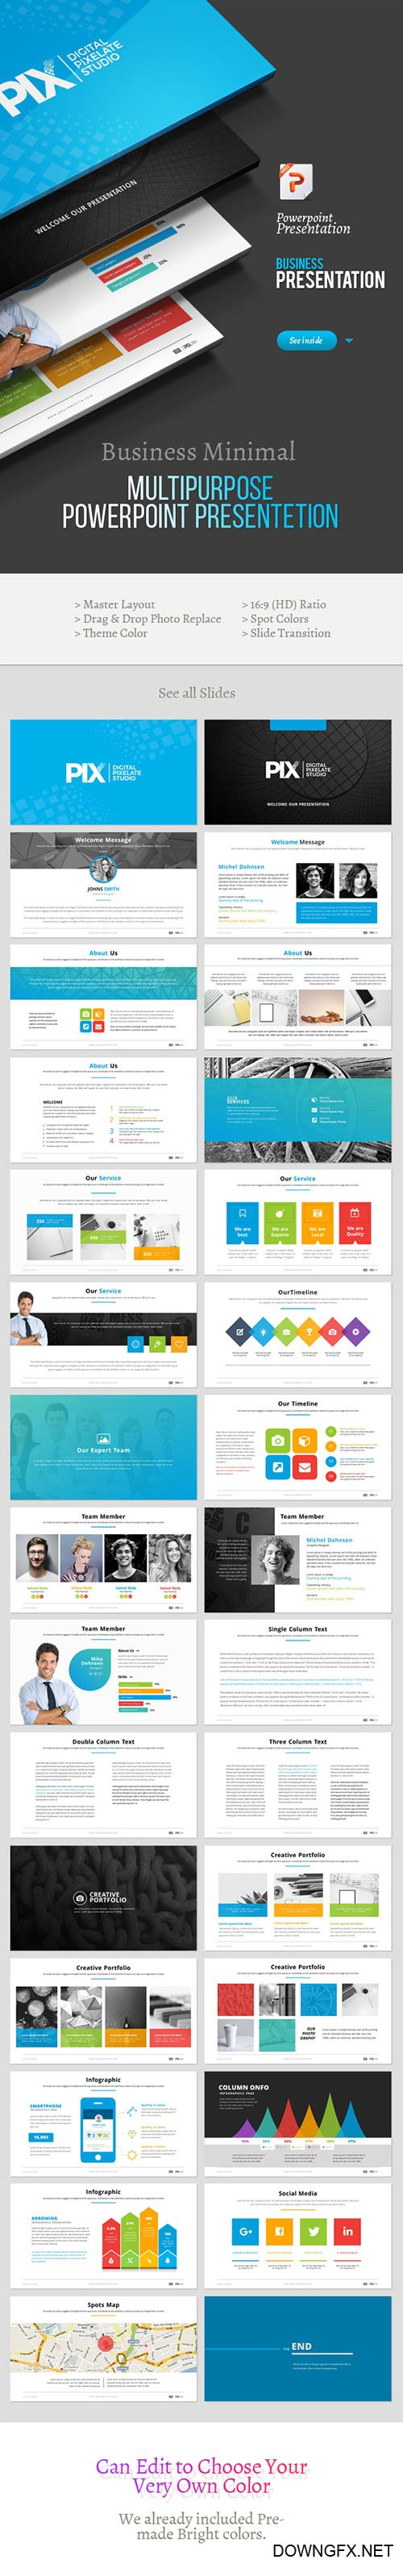 GR - WhitePix Business Multipurpose Powerpoint Template 21550122